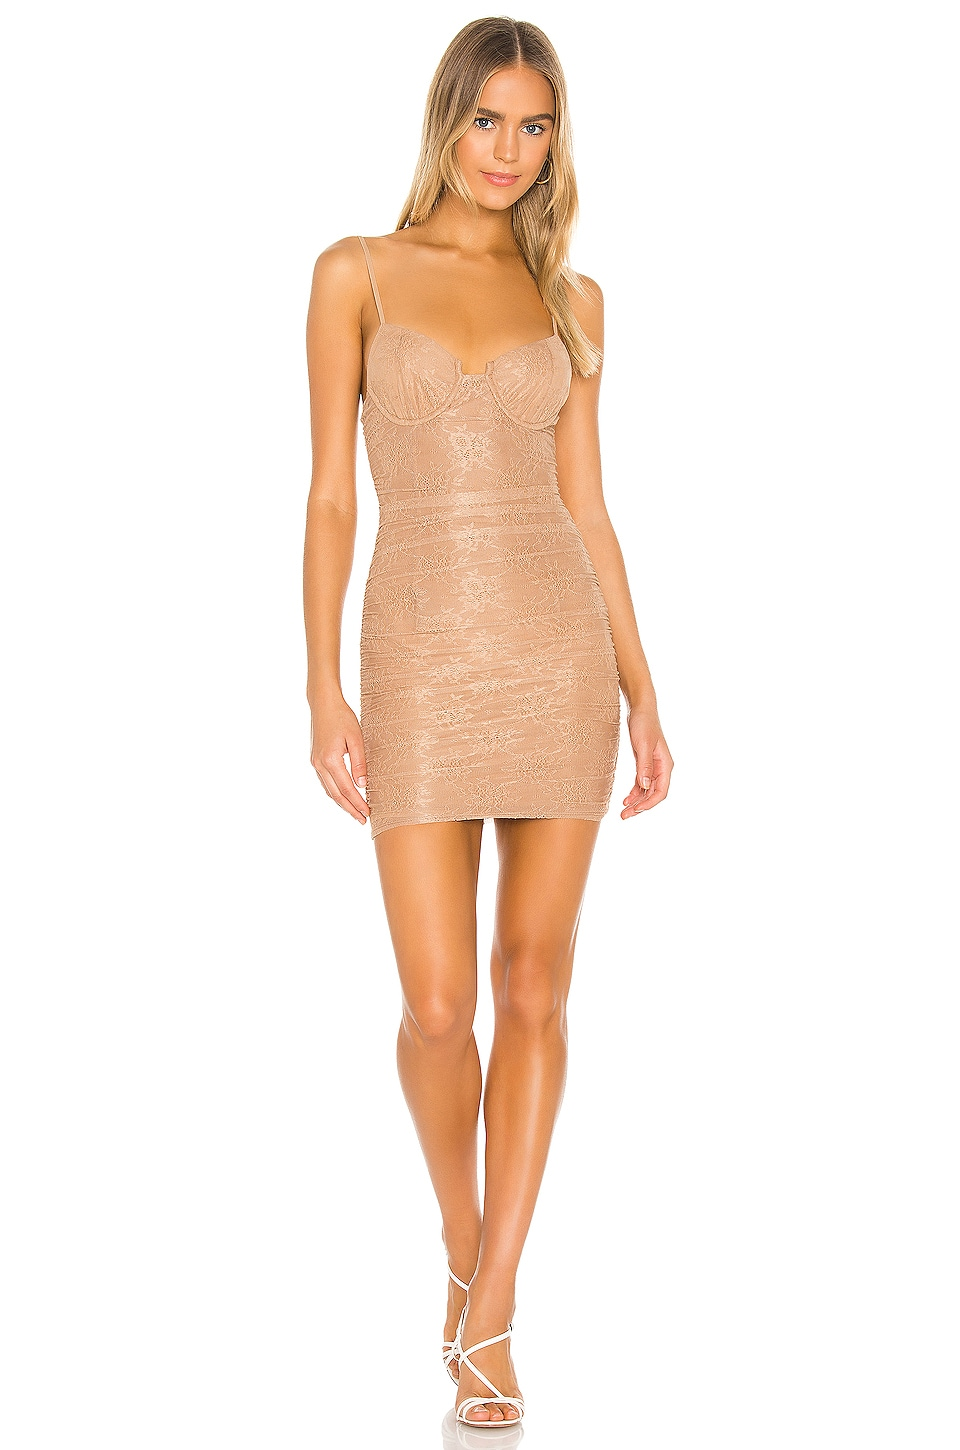 Sierra Mini Dress             Camila Coelho                                                                                                       CA$ 259.13 17